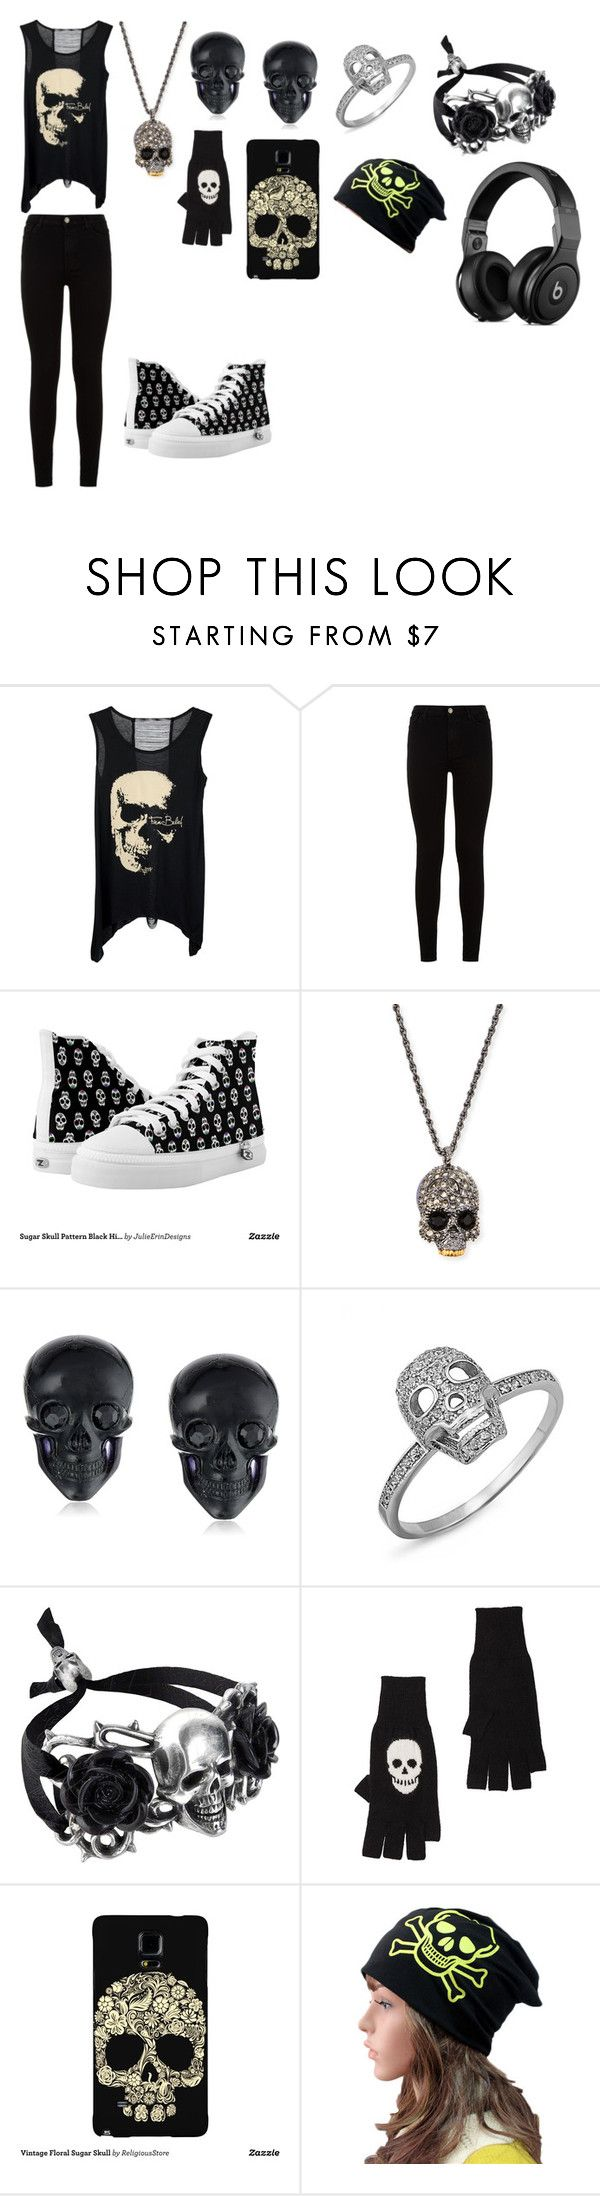 """""""skull outfit"""" by candysmash6252 on Polyvore featuring 7 For All Mankind, Alexis Bittar, Tarina Tarantino and Autumn Cashmere"""